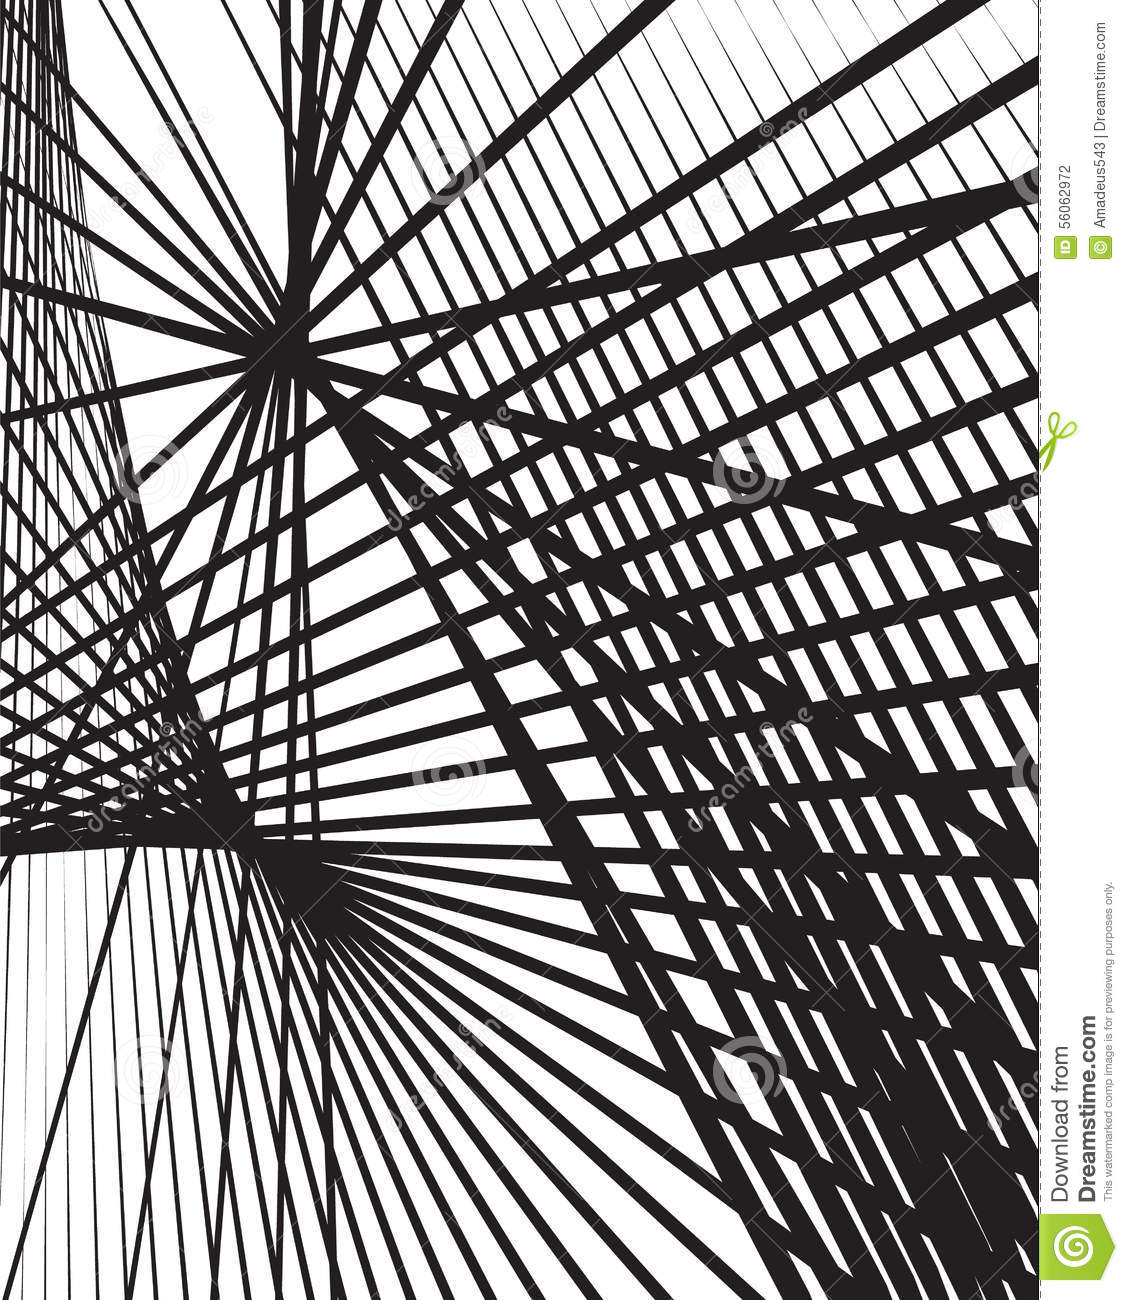 Random lines abstract background modern minimal art like for Minimal art kunstwerke